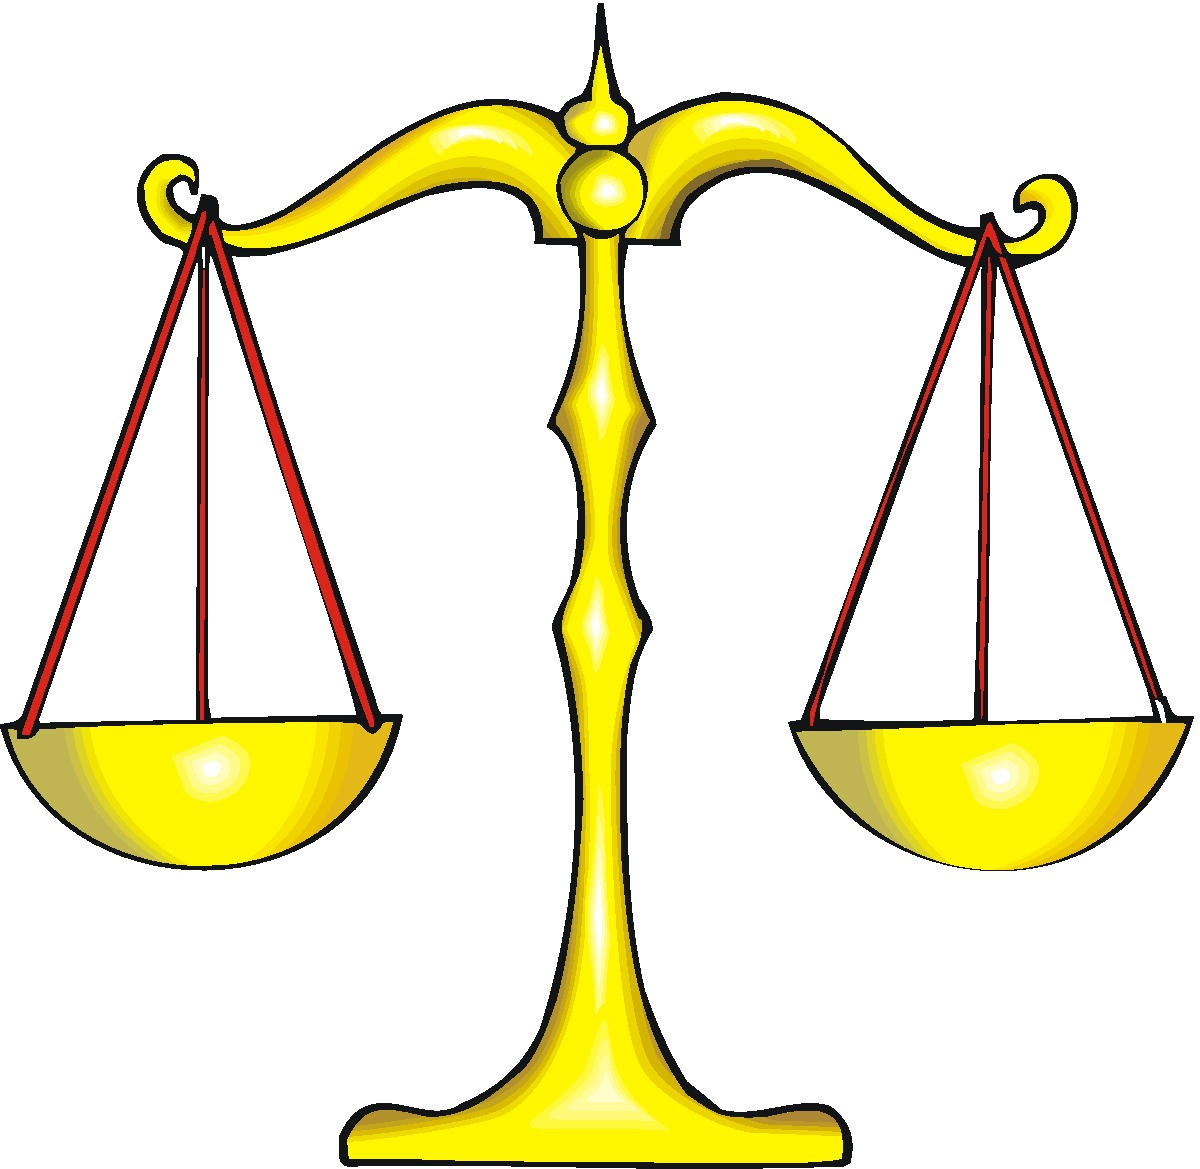 simple balance scale clipart clipart suggest Scales of Justice No Background Scales of Justice Logo